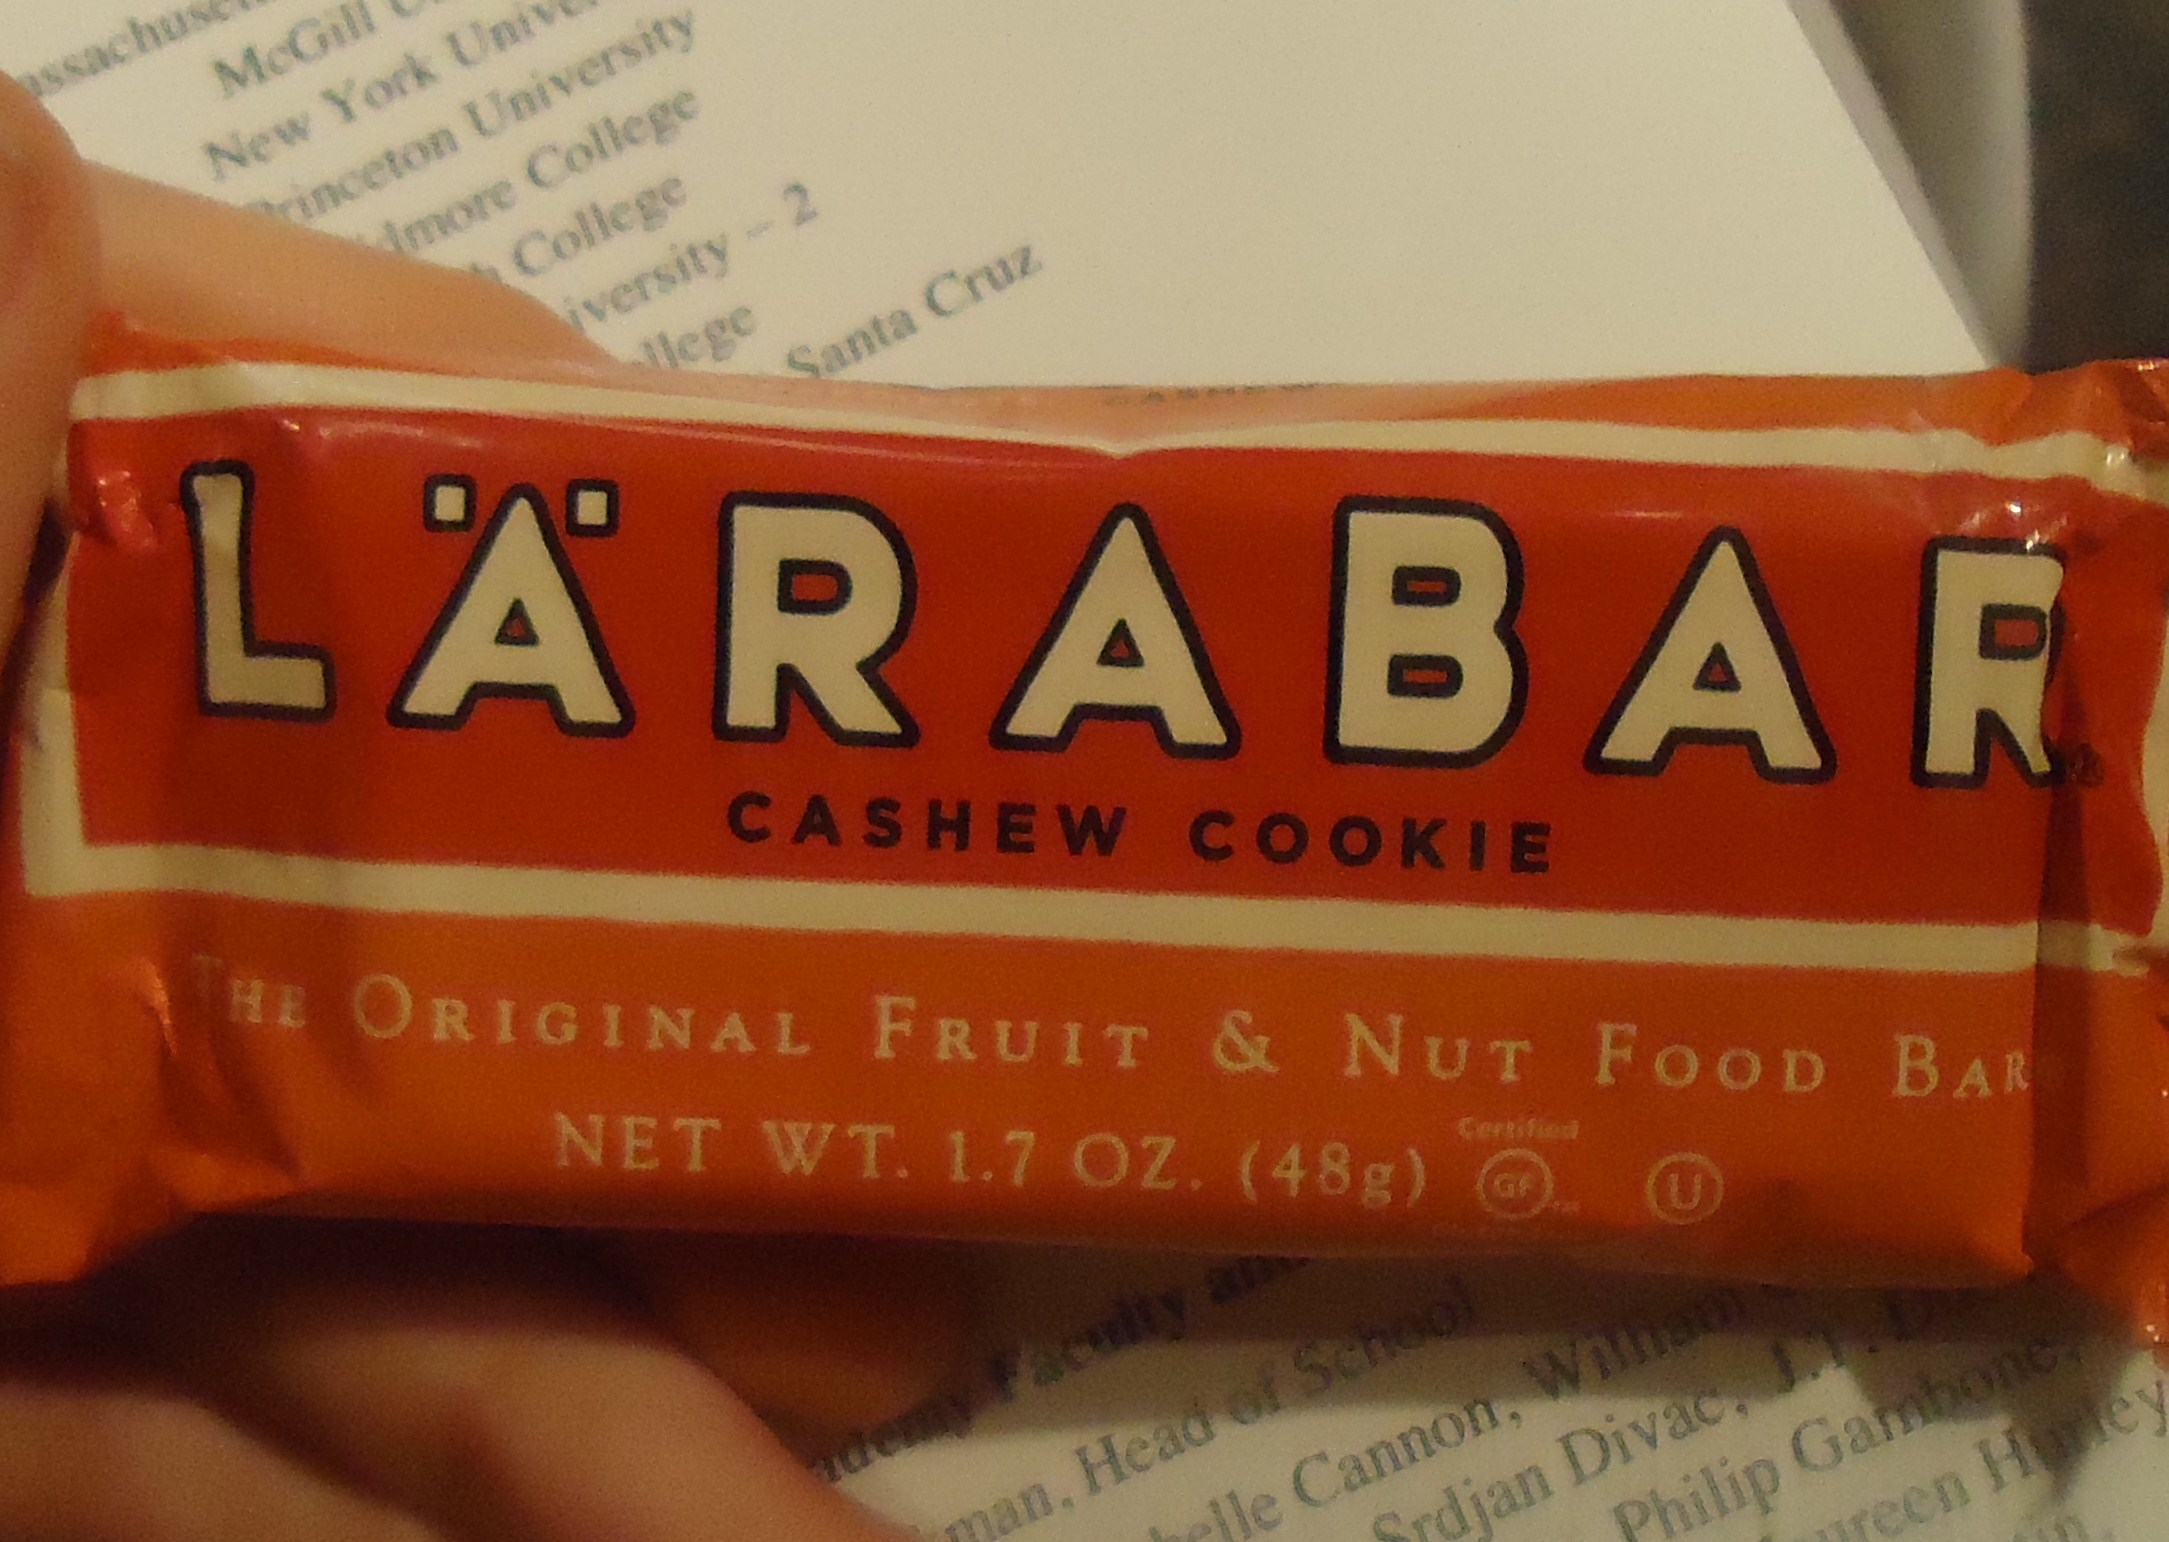 Cashew Cookie Larabar